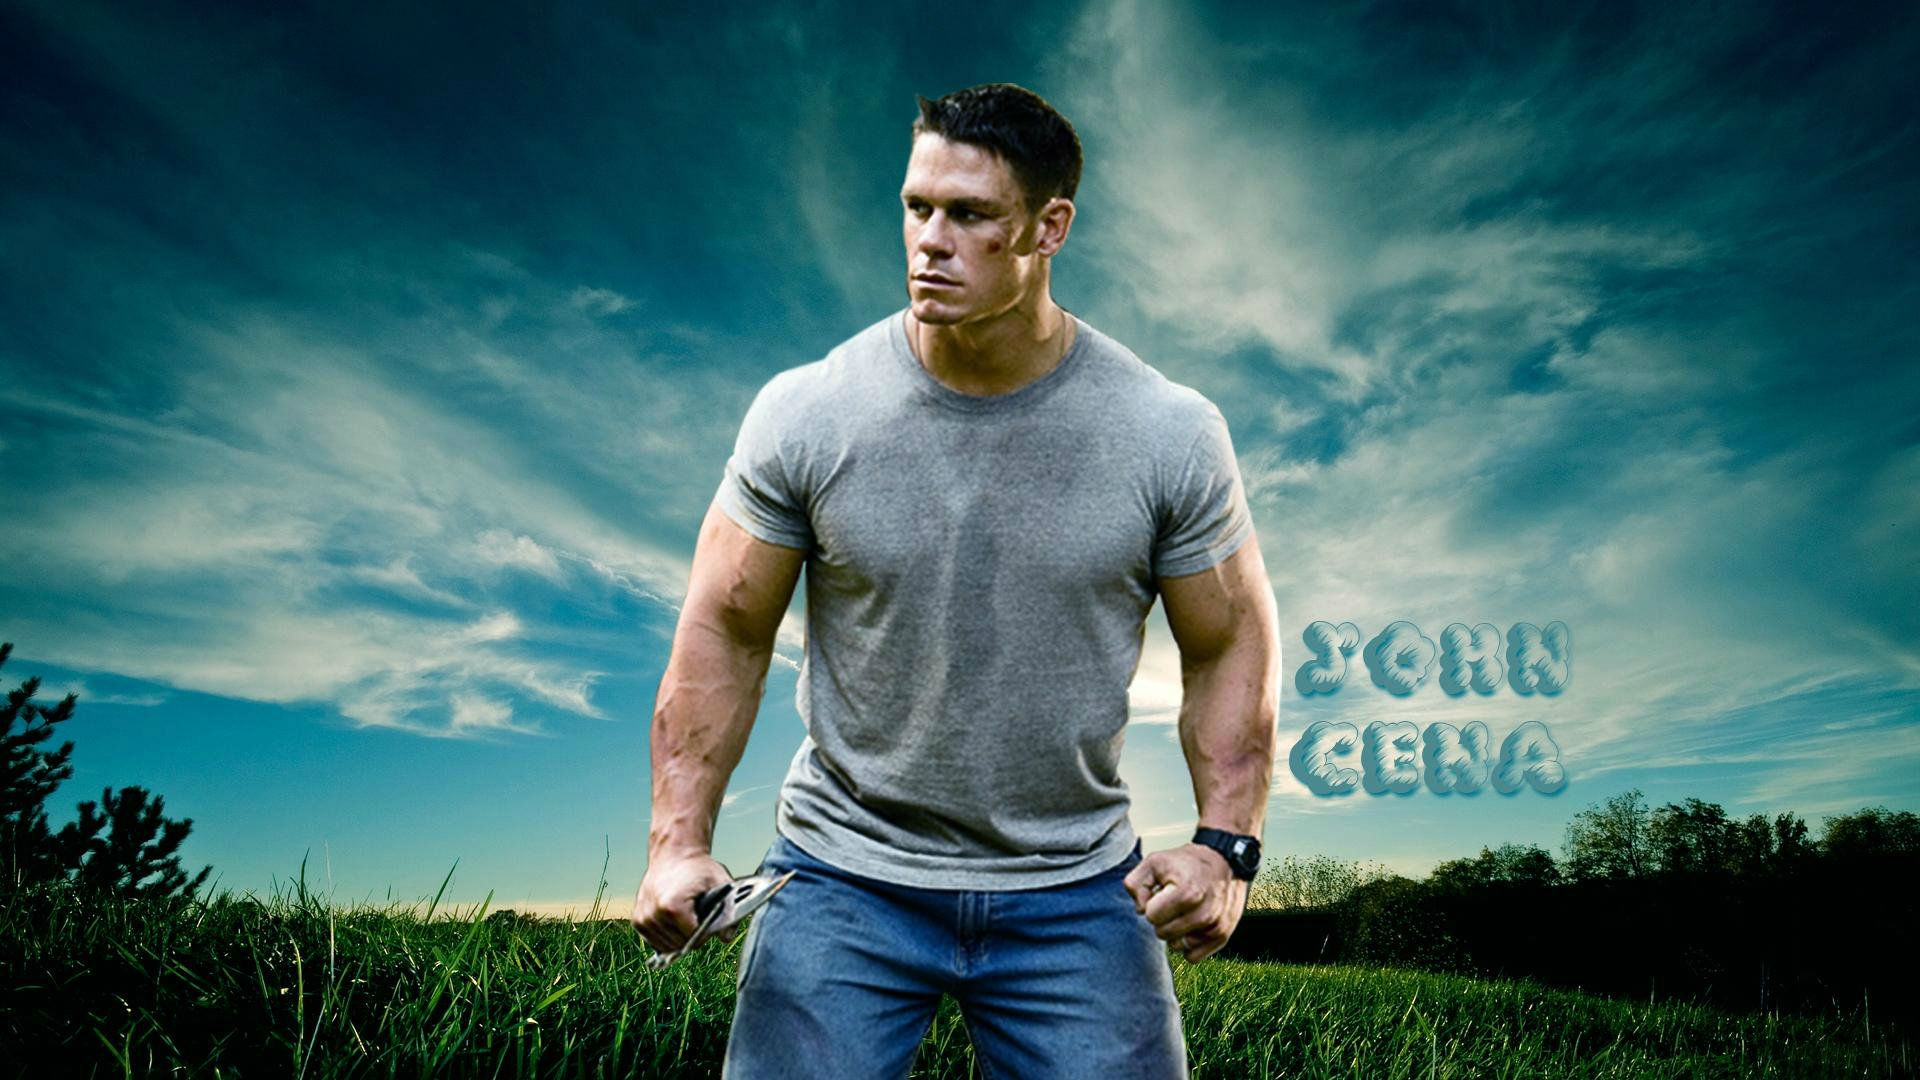 john cena hd desktop background